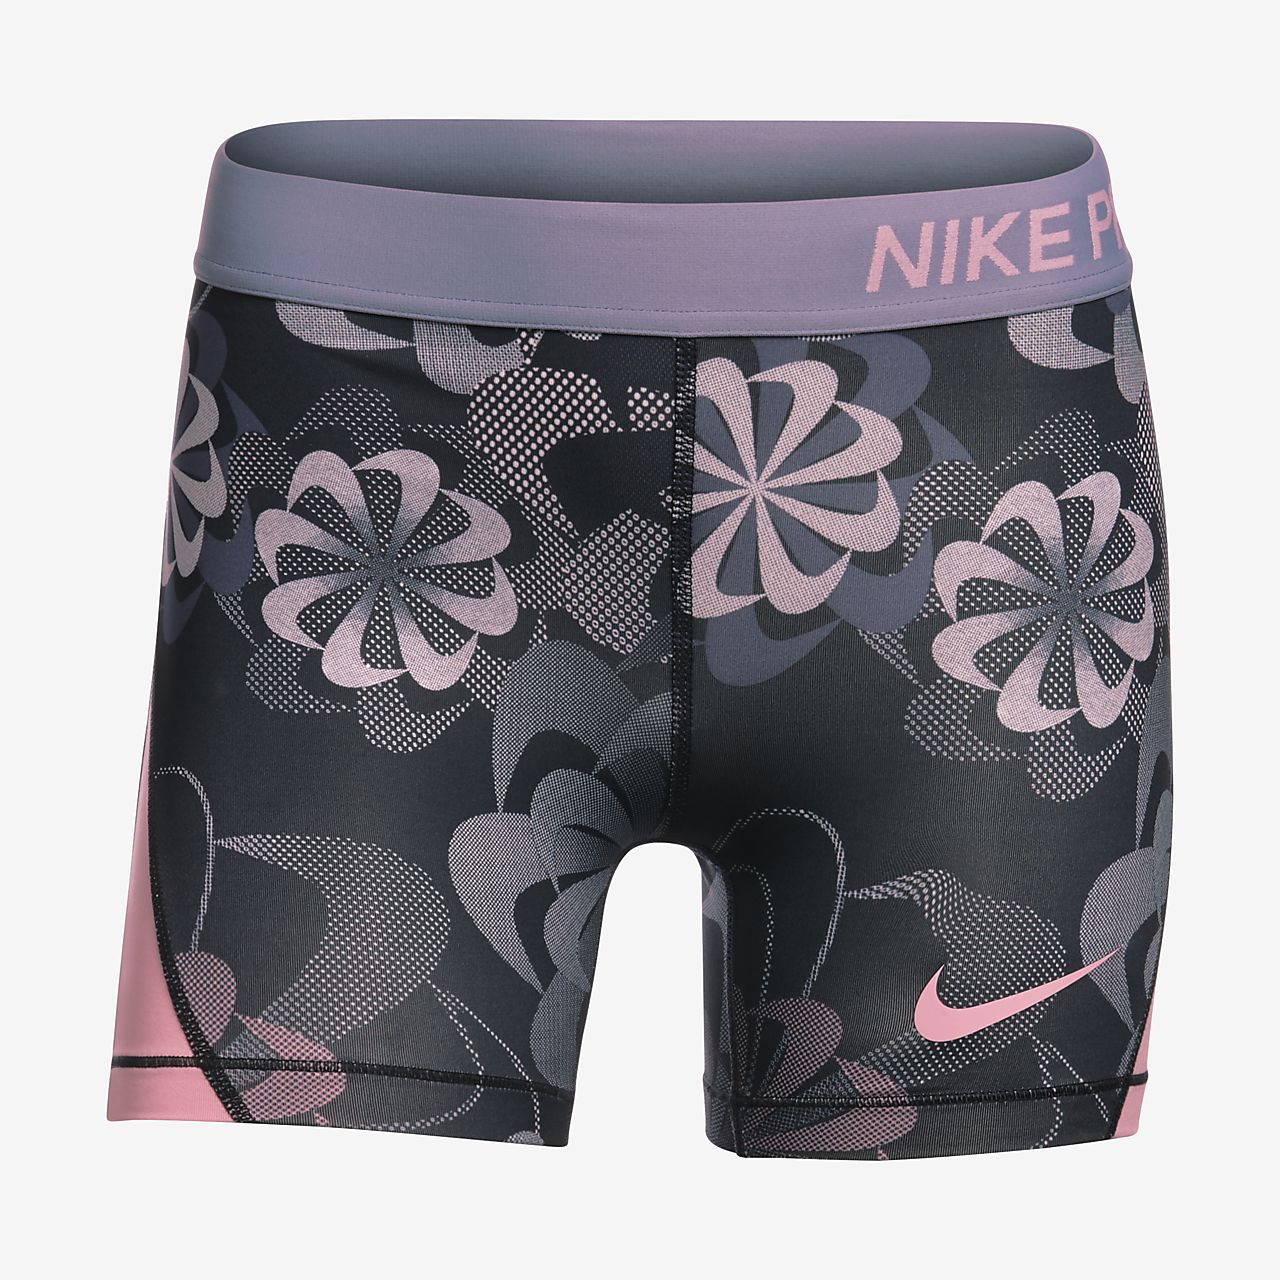 Shorts Clothing Nike Pro Older Kids Girls Shorts